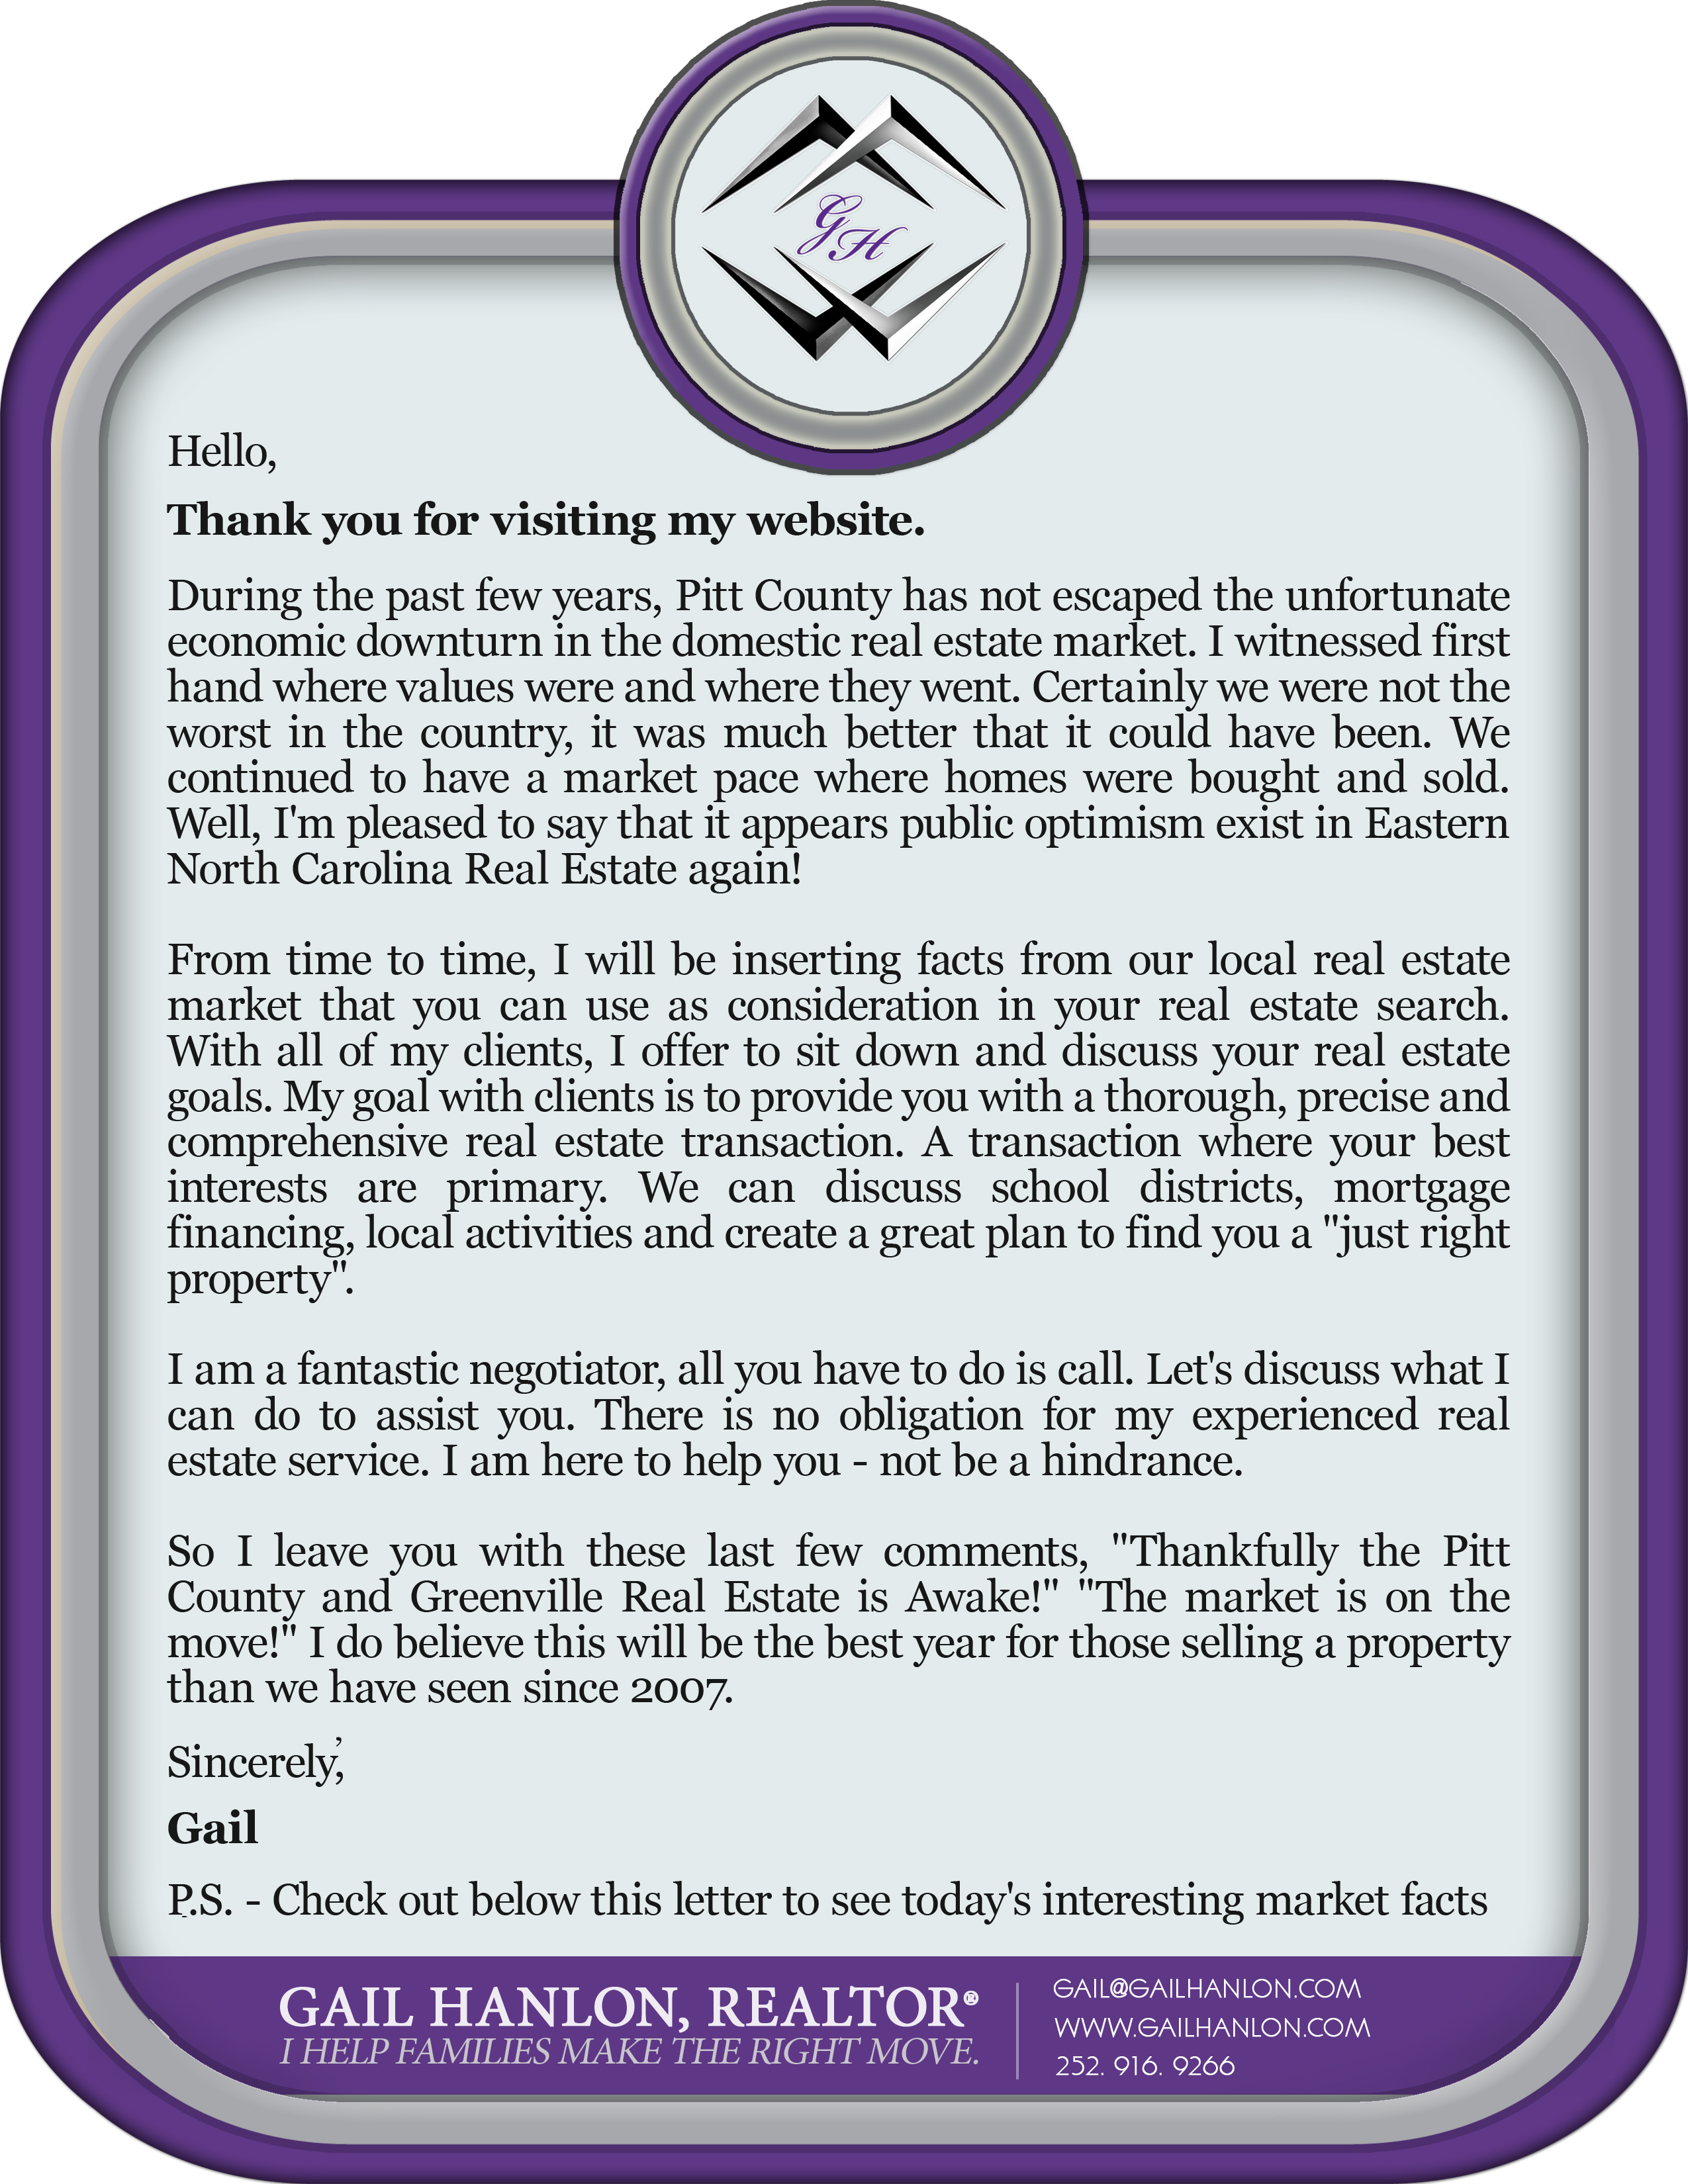 A letter from gail hanlon a Realtor in Greenville nc discussing the real estate market.